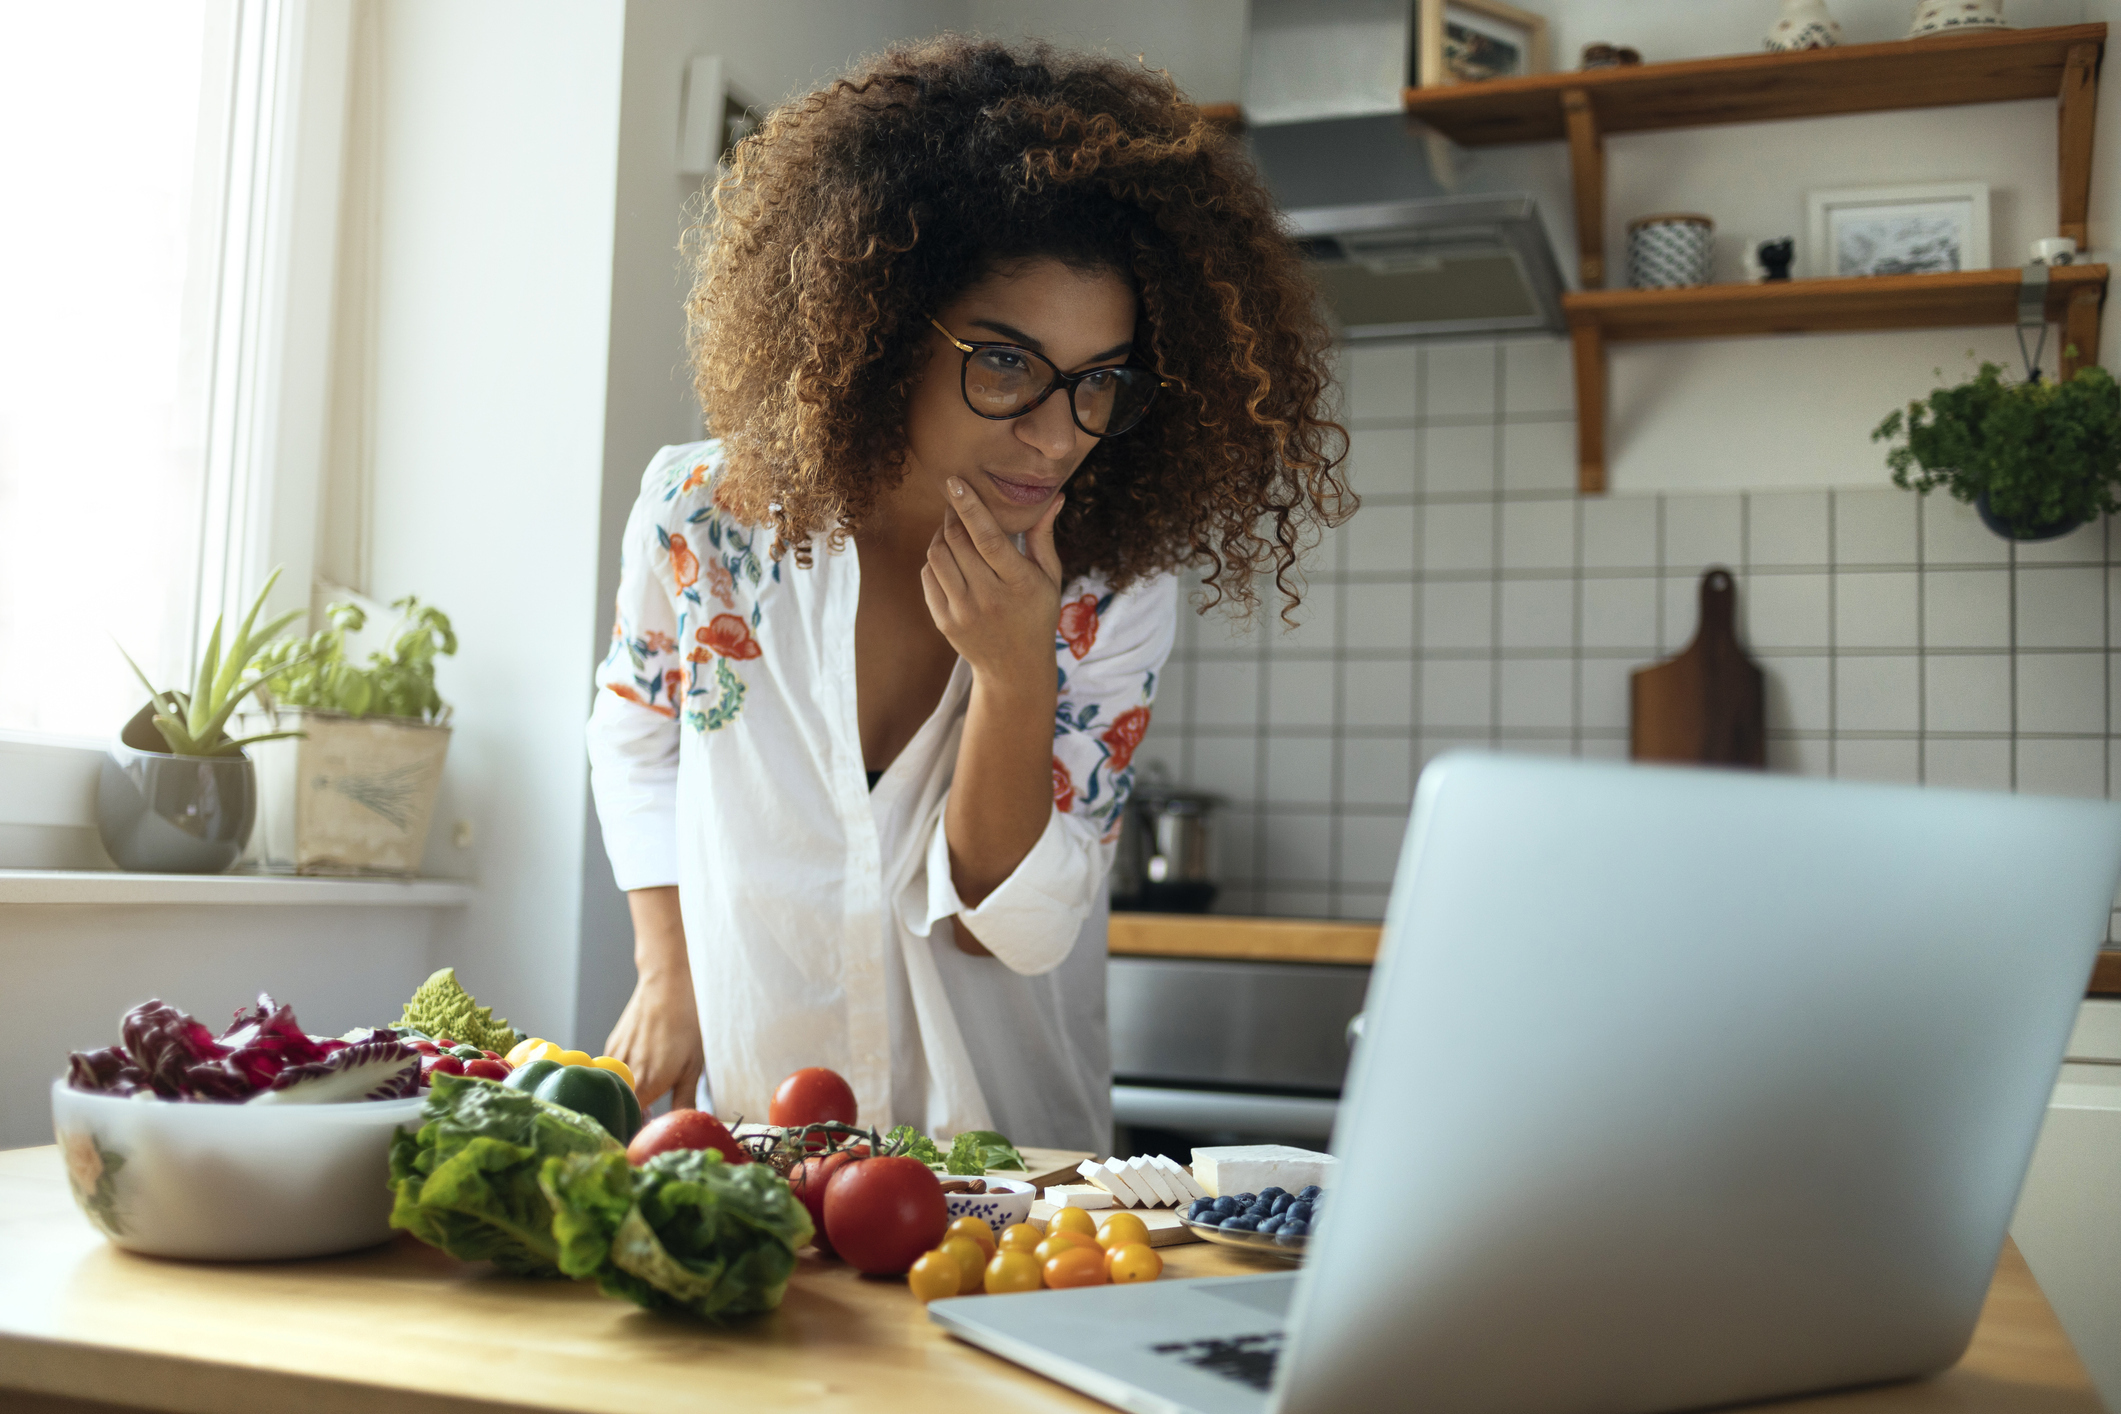 Woman in her kitchen looking at her computer for keto diet recipe ideas.